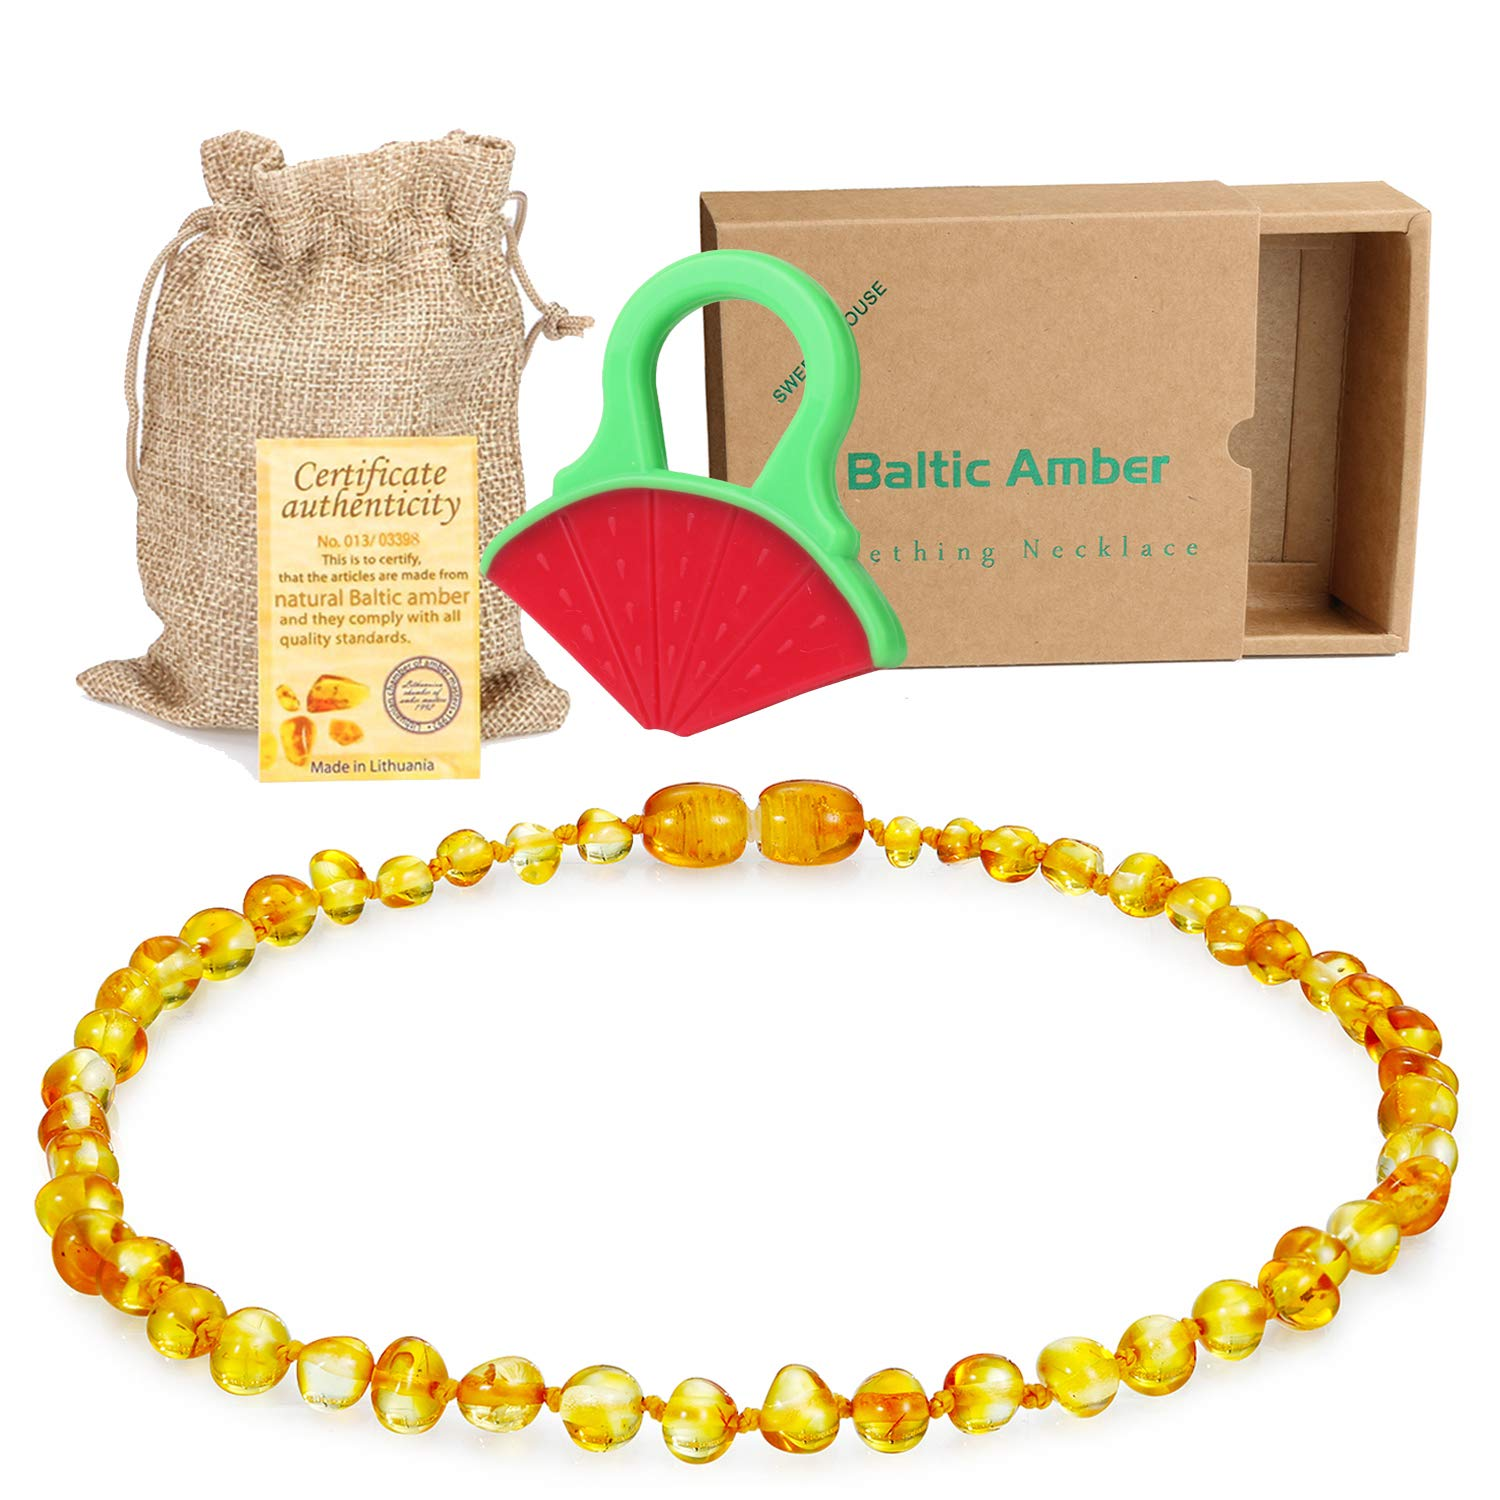 Raw Baltic Amber Teething Necklace for Babies - (Honey) Anti-Flammatory, Drooling & Teething Pain Reduce Properties - Natural Certificated Oval Baltic Jewelry with The Highest Quality